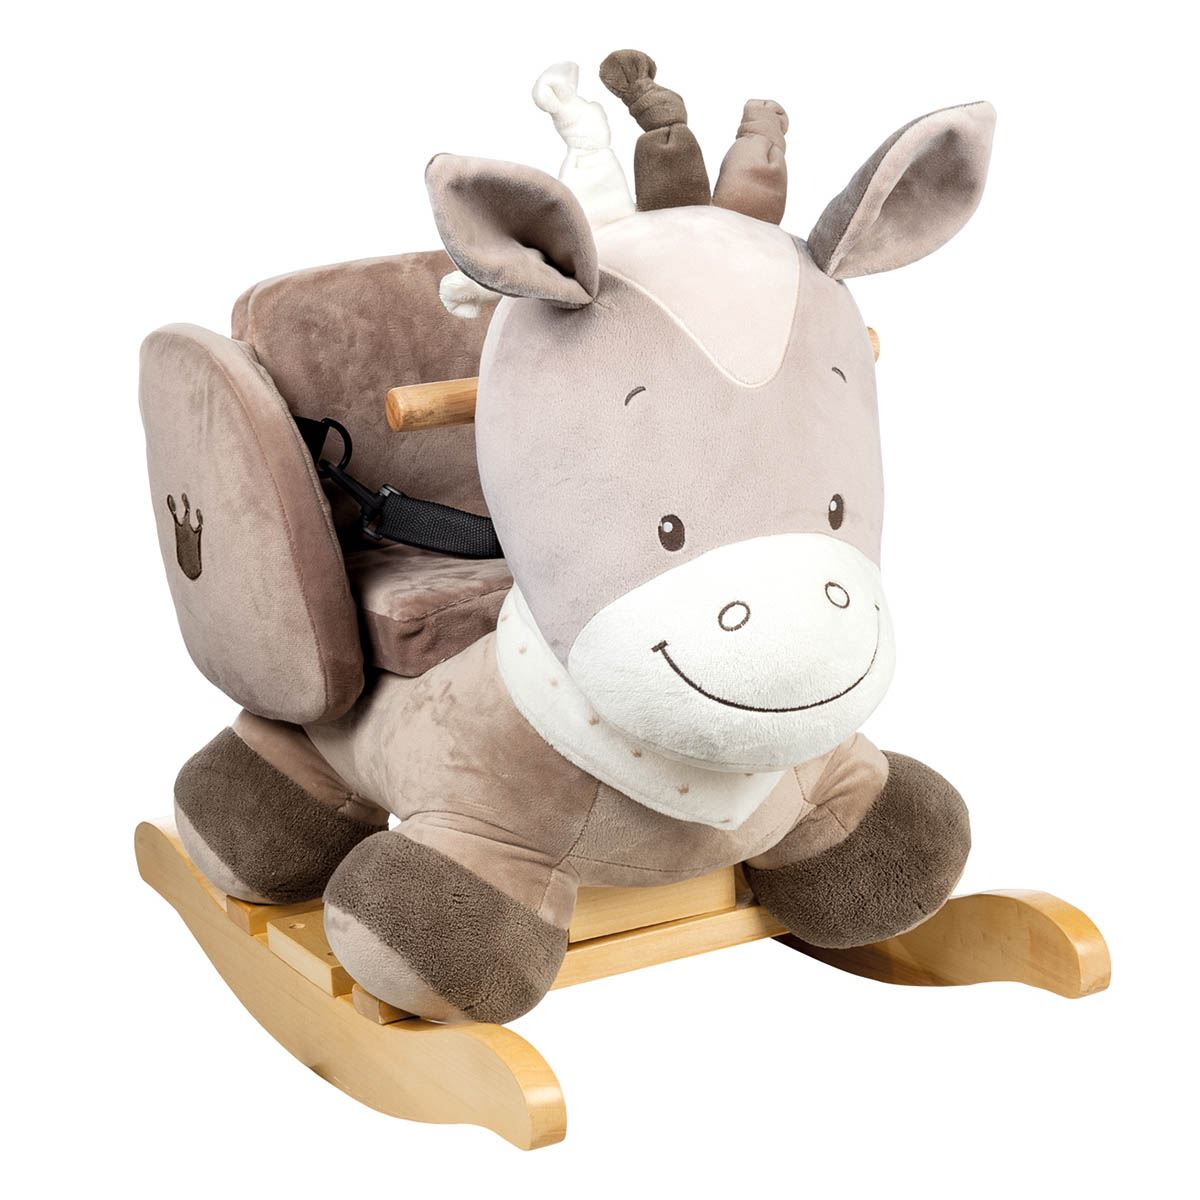 nattou animal rocker  months toddler ride on rocking horse  ebay - nattouanimalrockermonthstoddlerride